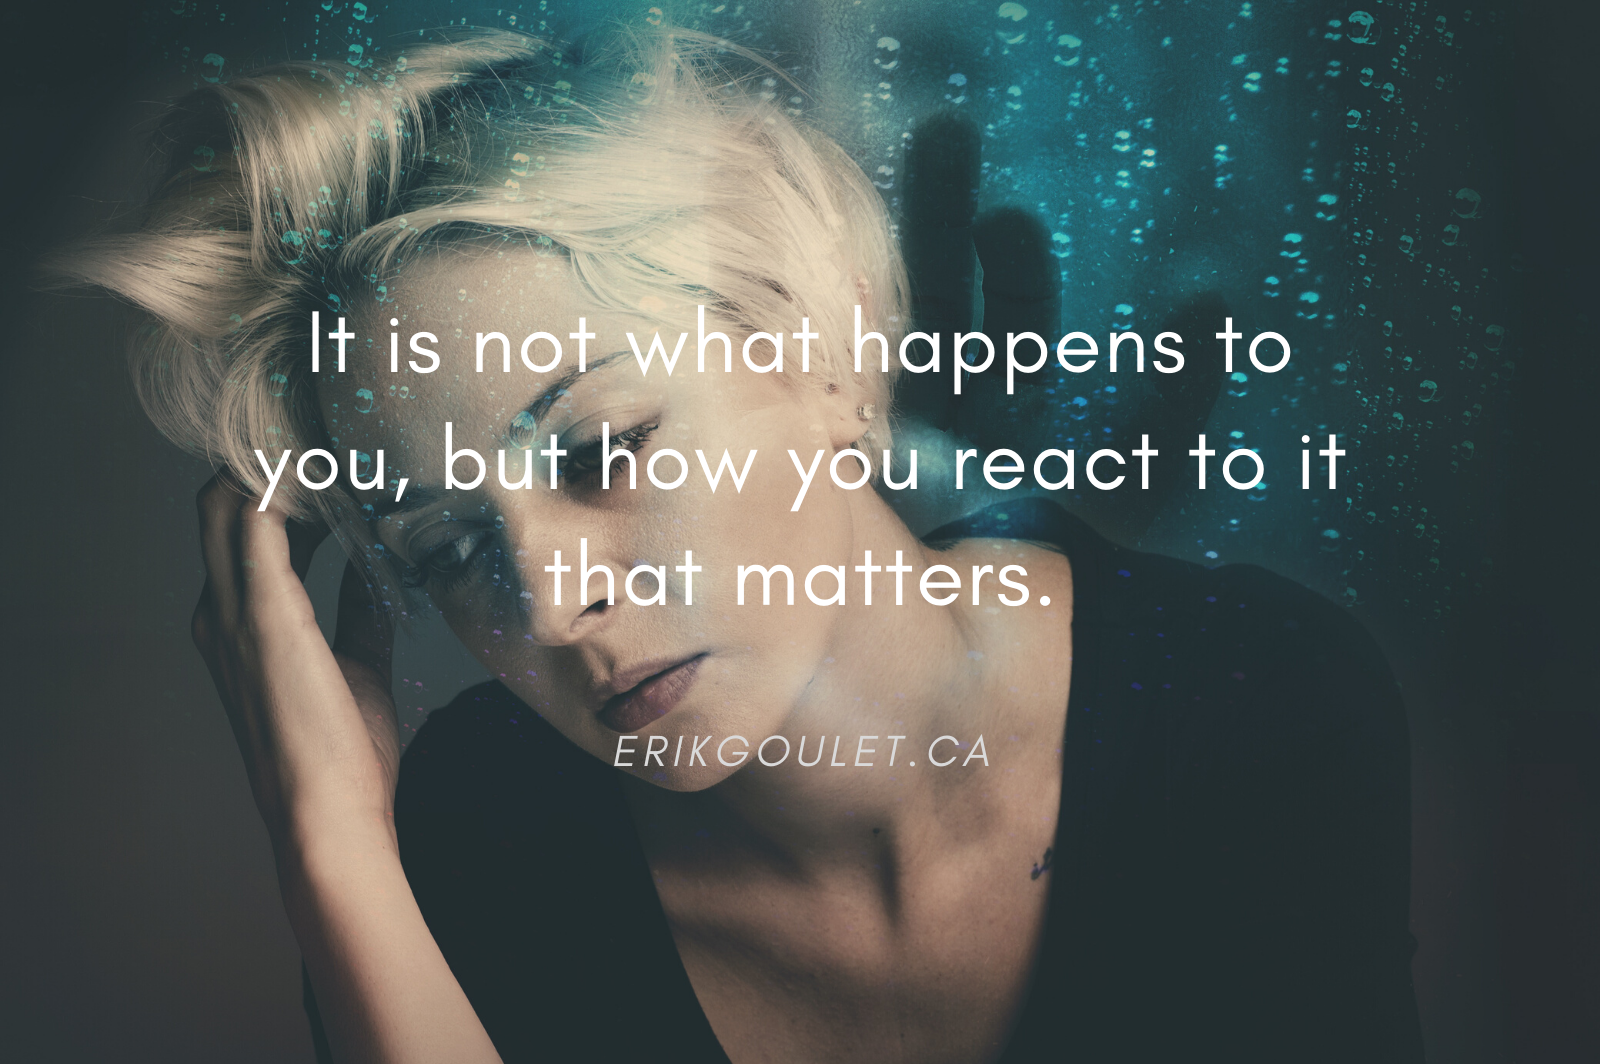 It is not what happens to you, but how you react to it that matters!